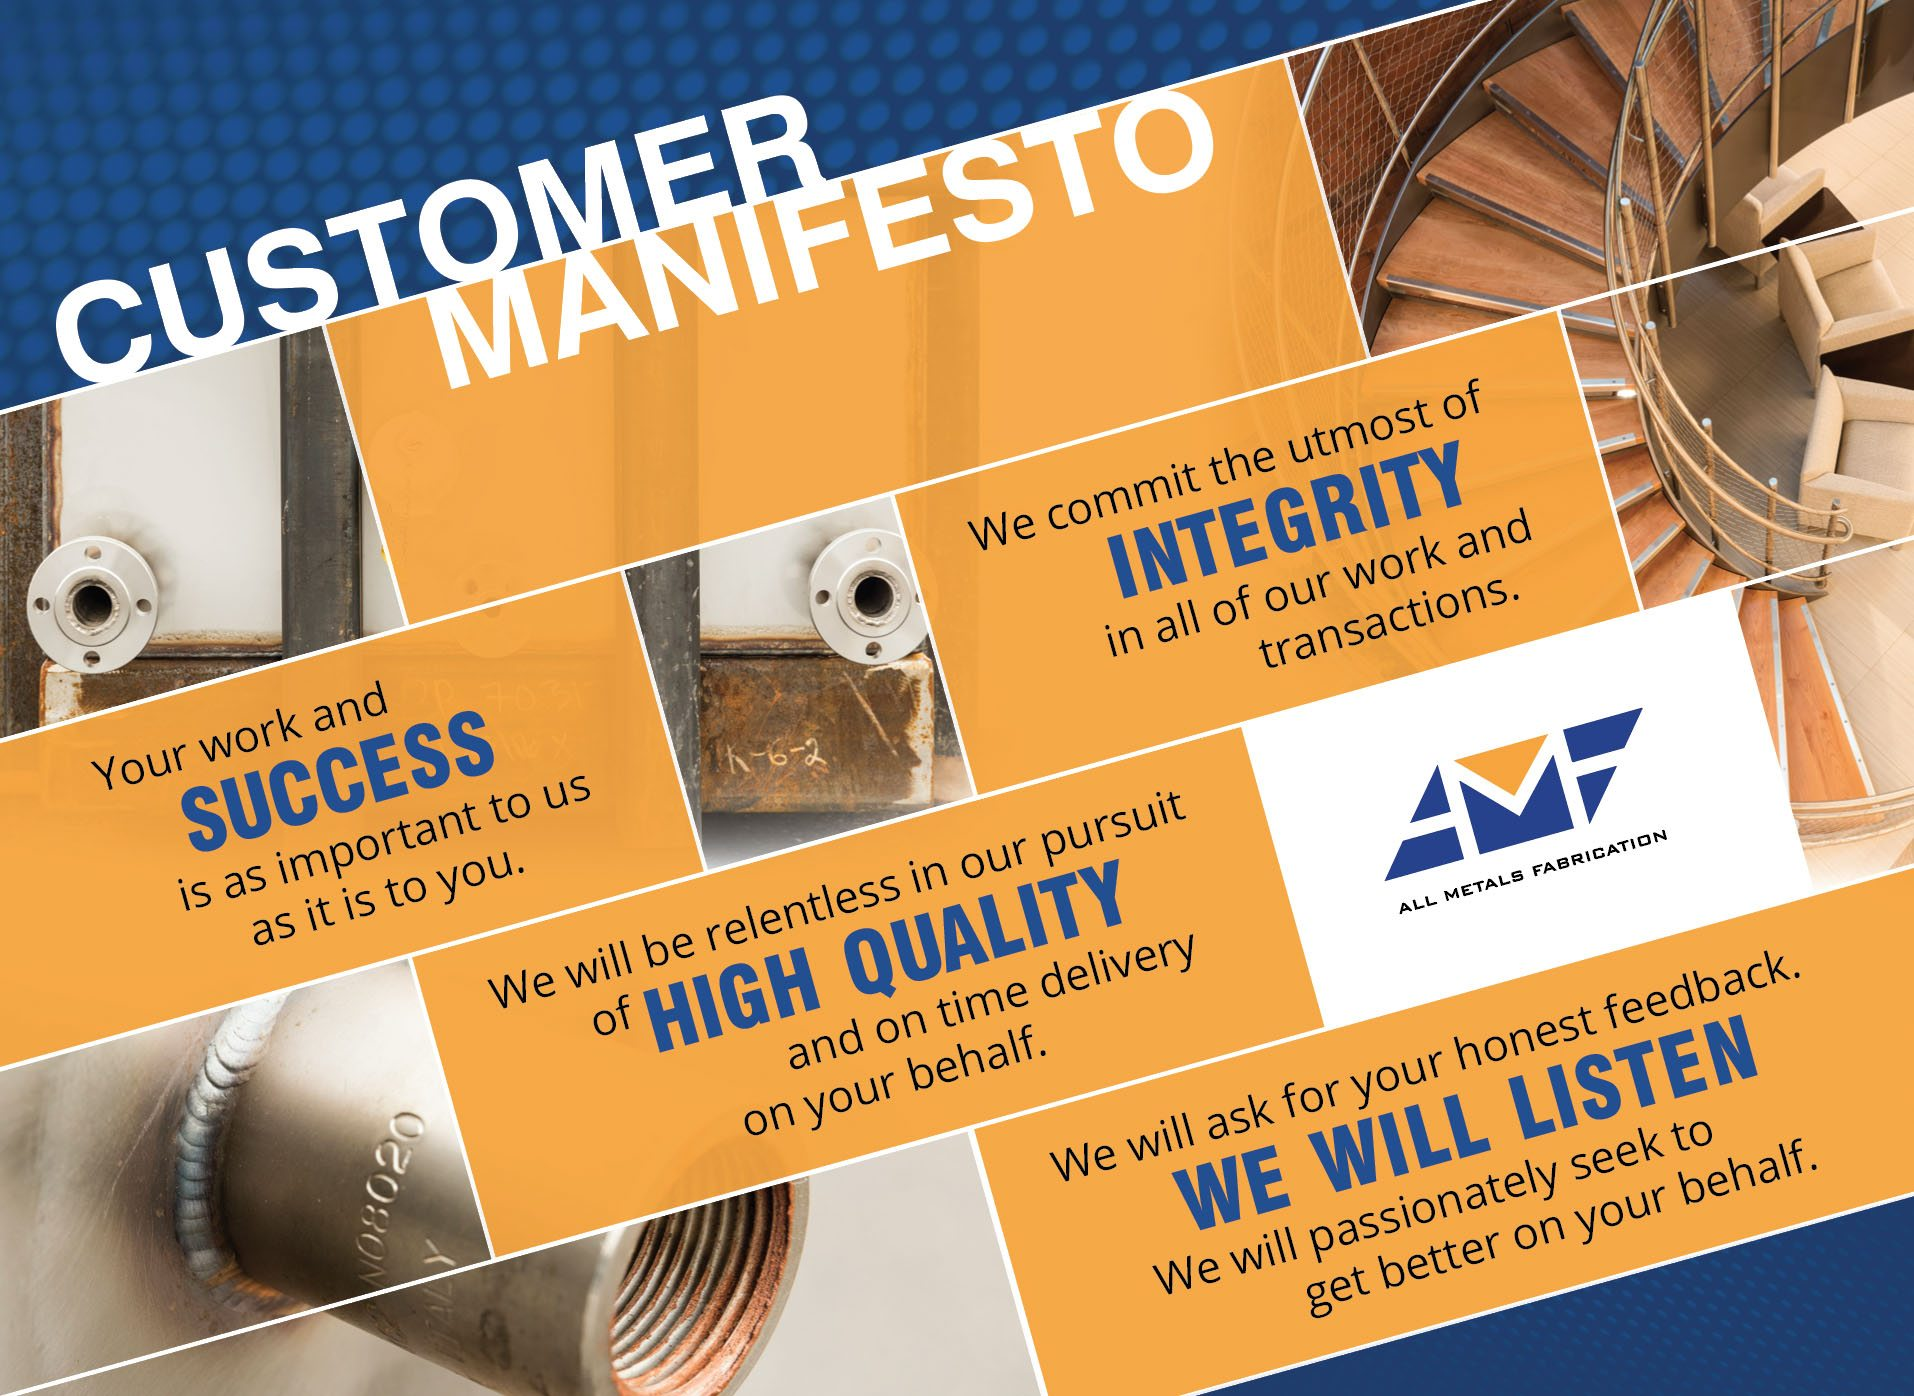 all metals fabrication customer manifesto